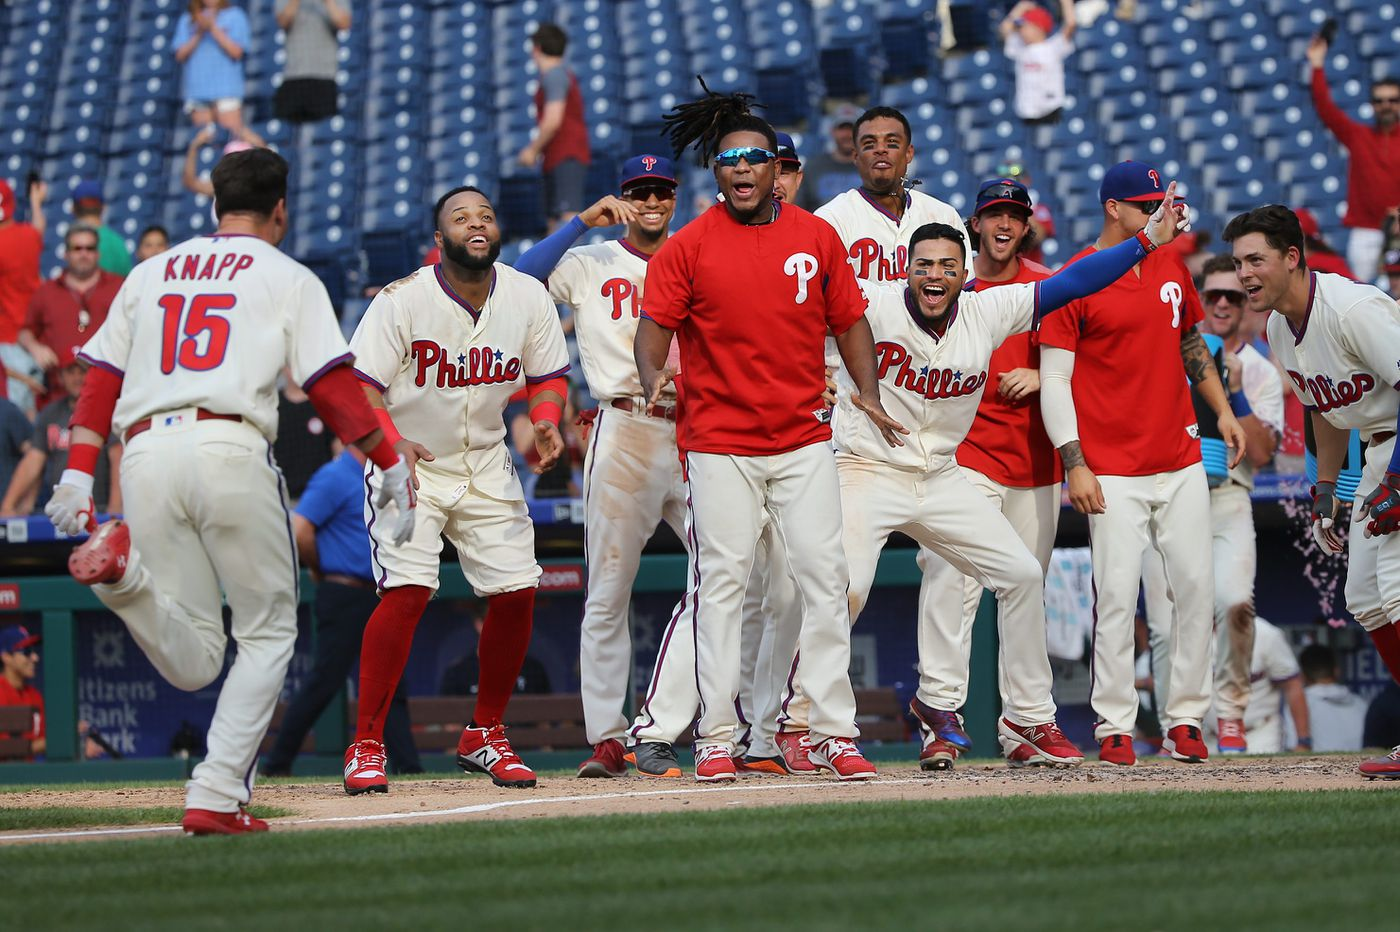 Andrew Knapp's walk-off homer gives Phillies 13-inning win over Nationals